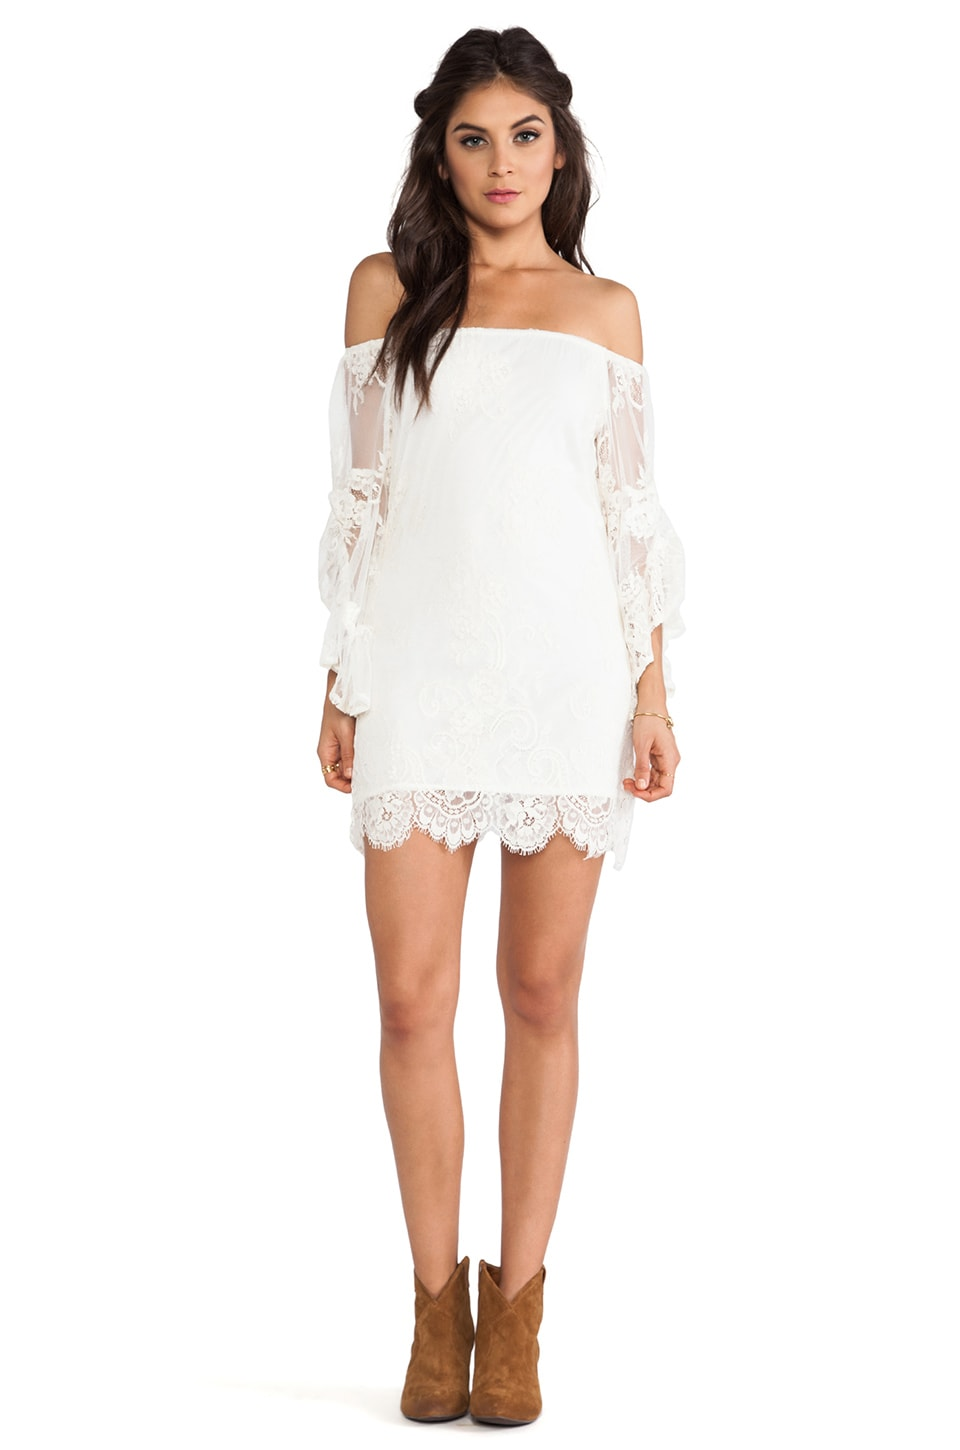 Jen's Pirate Booty Ethereal Bardot Mini Dress in White Sand